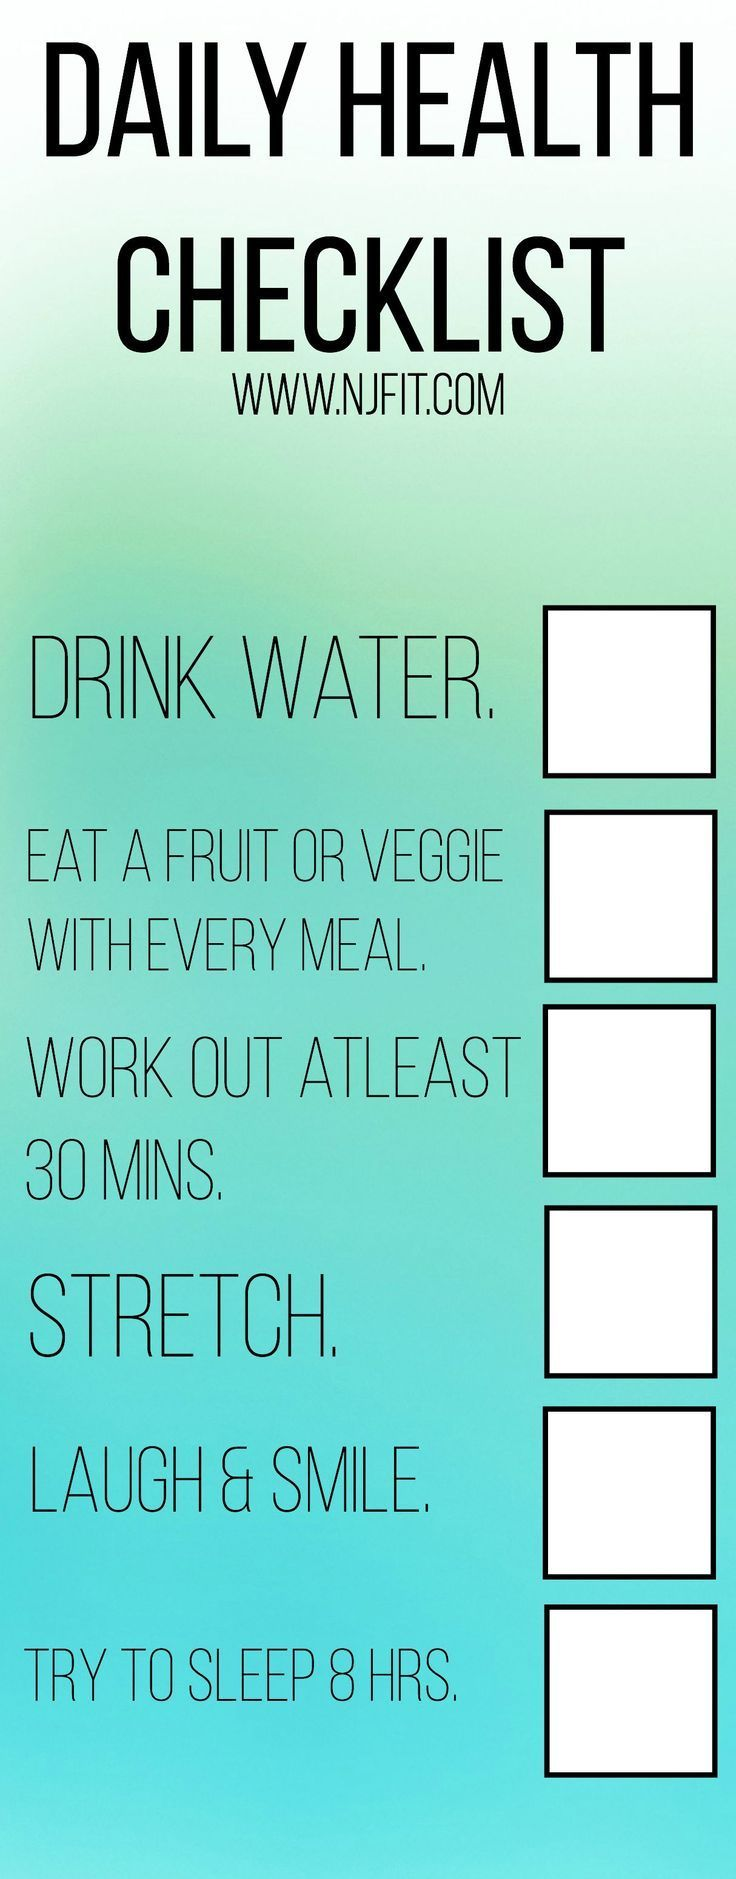 It's easy to get busy and forget the simple steps to a daily health routine. Here is a checklist. Save & repin as a reminder for those busy days. #medicalcentresydneycbd #bookmedicaldoctorssydney #sydneycbdmedicalpractice #doctorsydneycbd #medicalcentresydneycbd